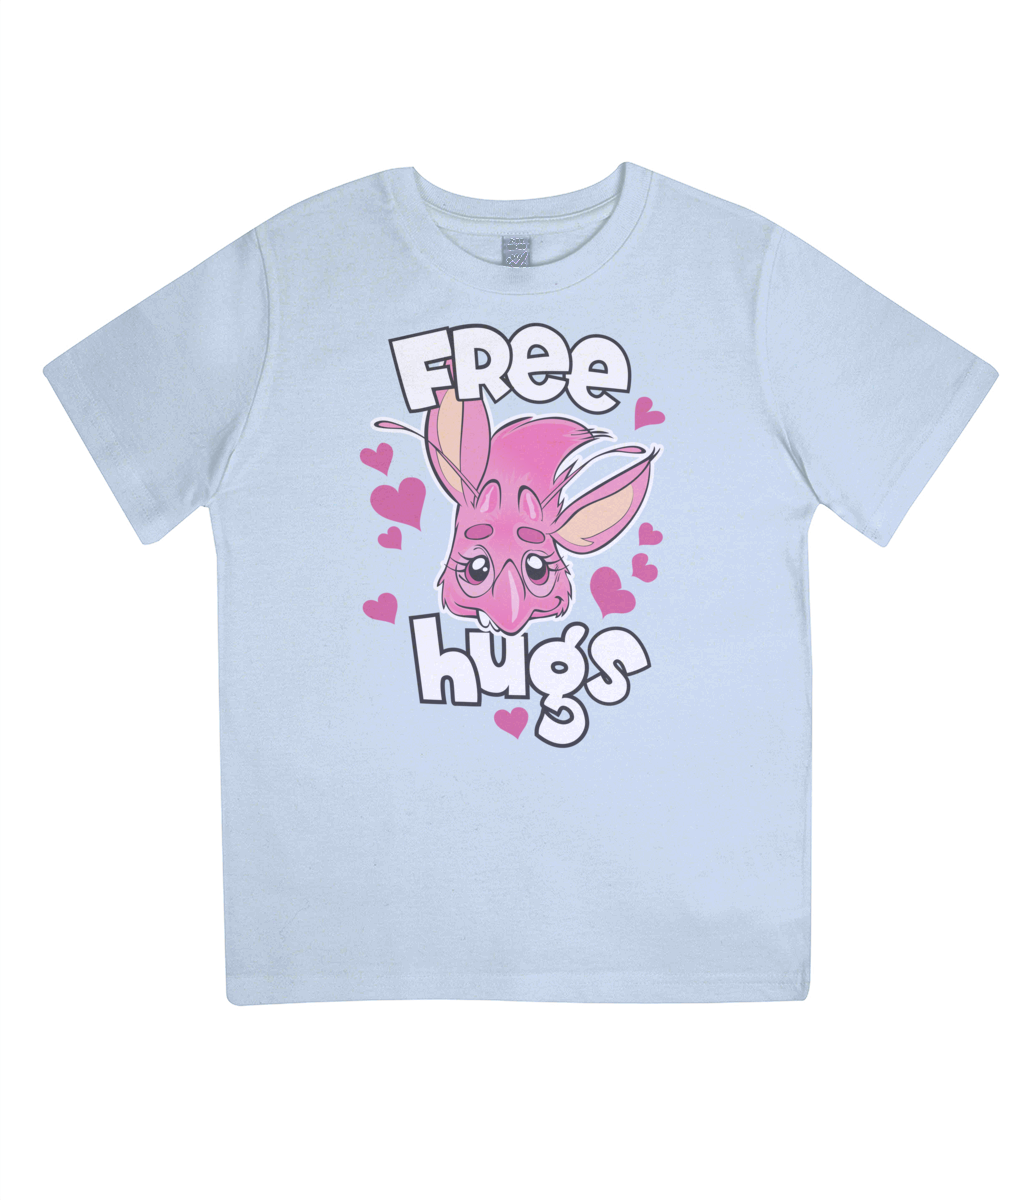 Beasties • free hugs • - Beasties Clothing